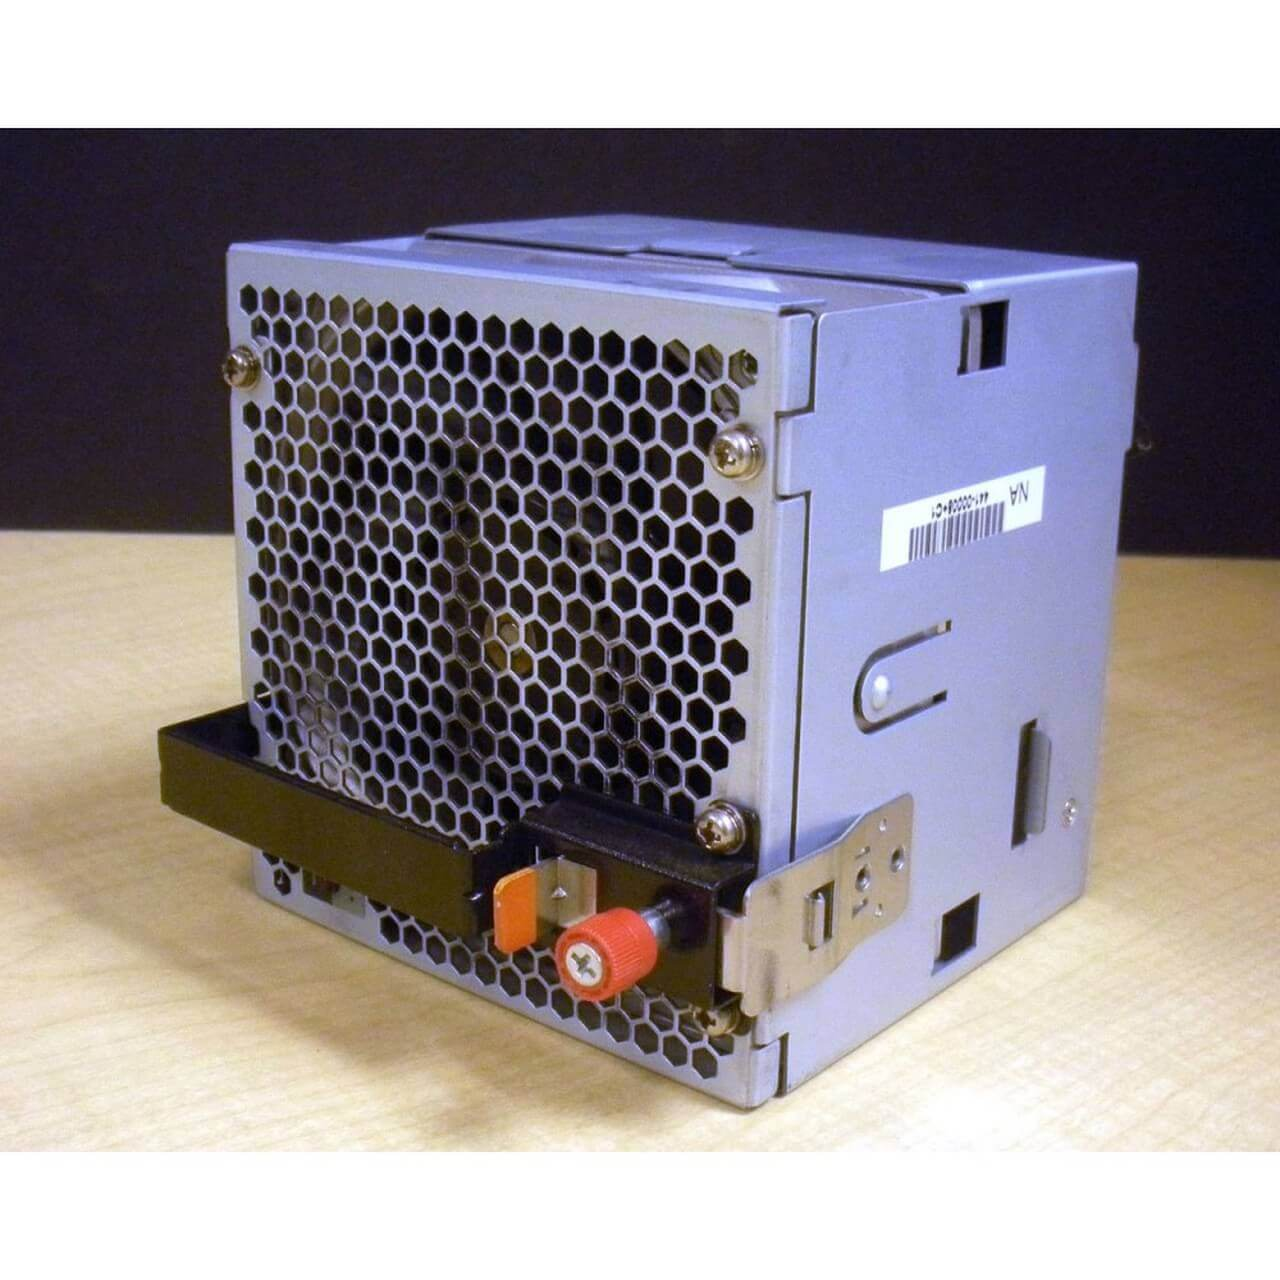 Buy & save refurbished NetApp Fans & Blowers for computer servers from your trusted partners at Flagship Technologies.